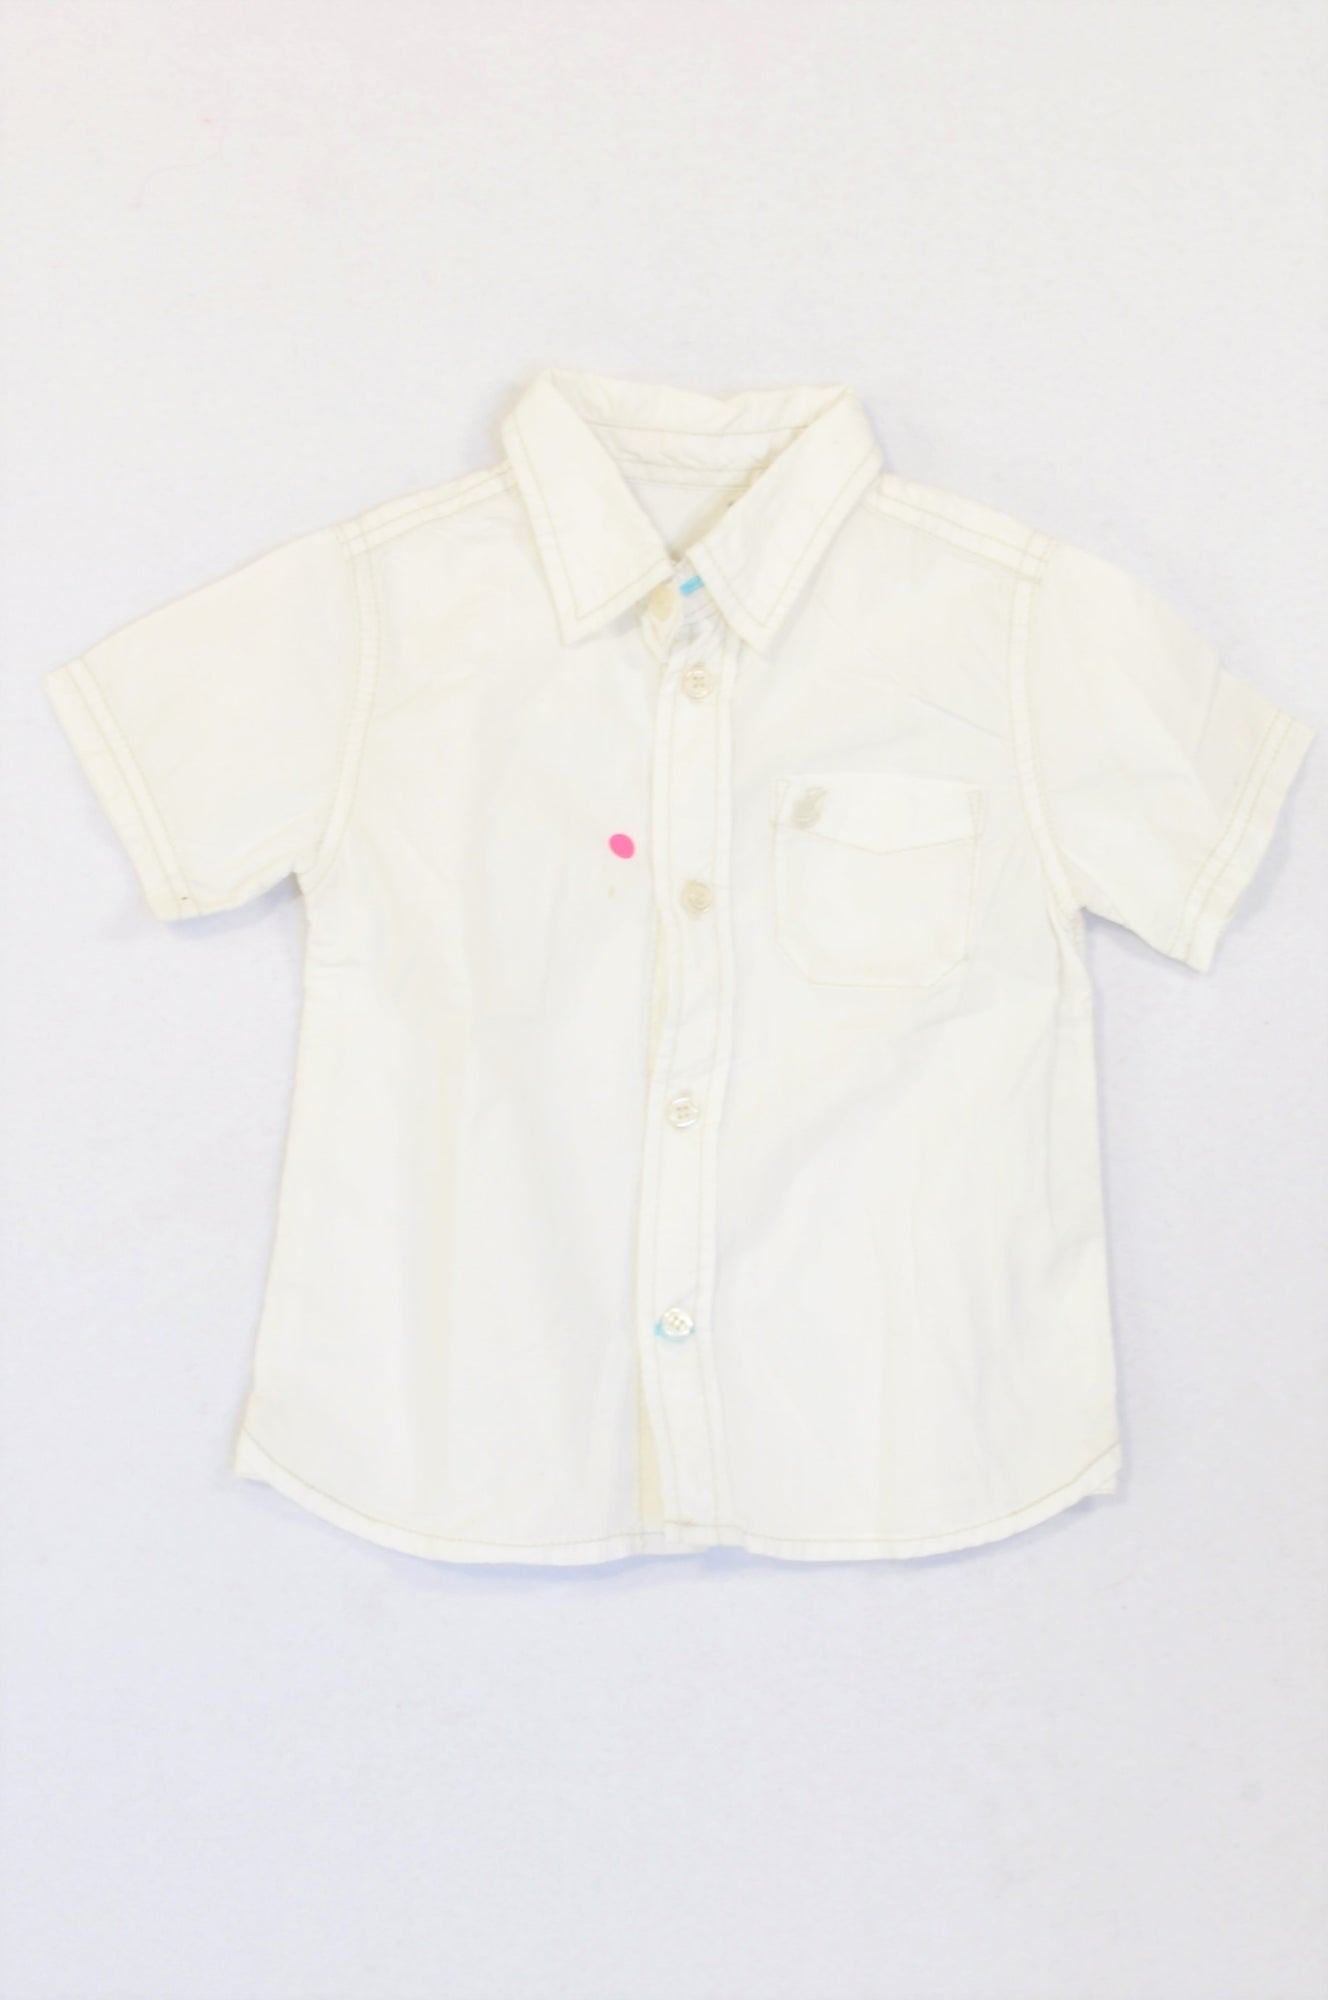 Unbranded Basic White Lightweight Button Shirt Boys 1-2 years